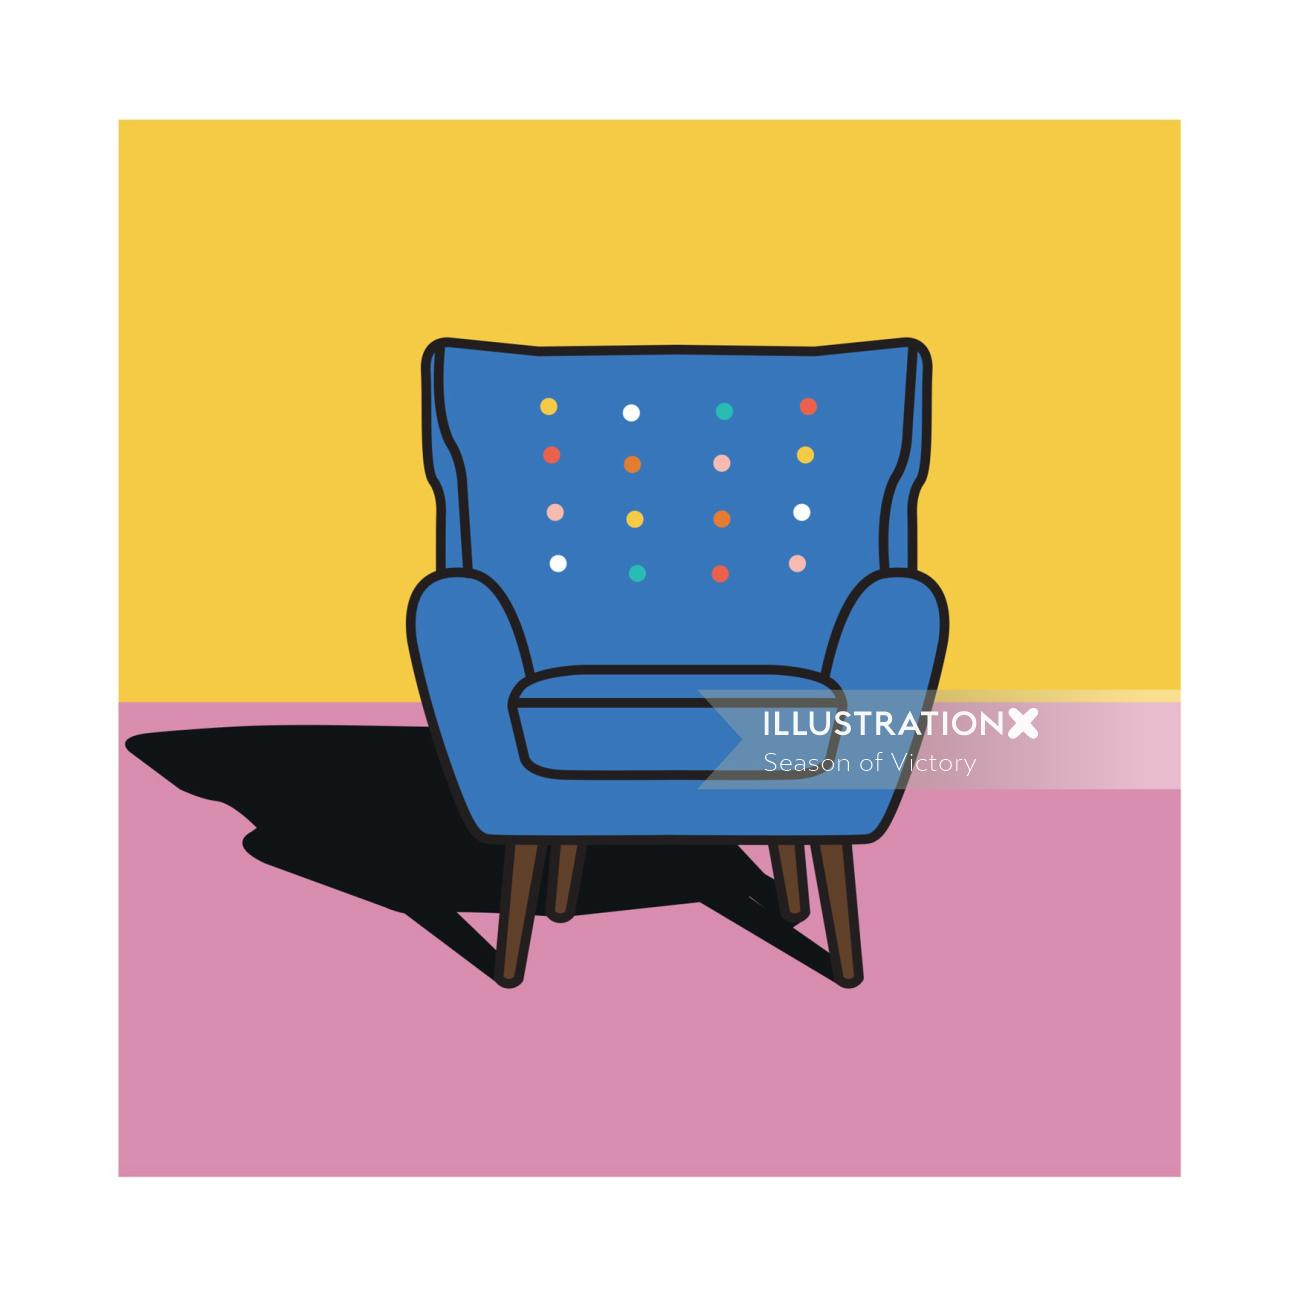 Graphic design of chair